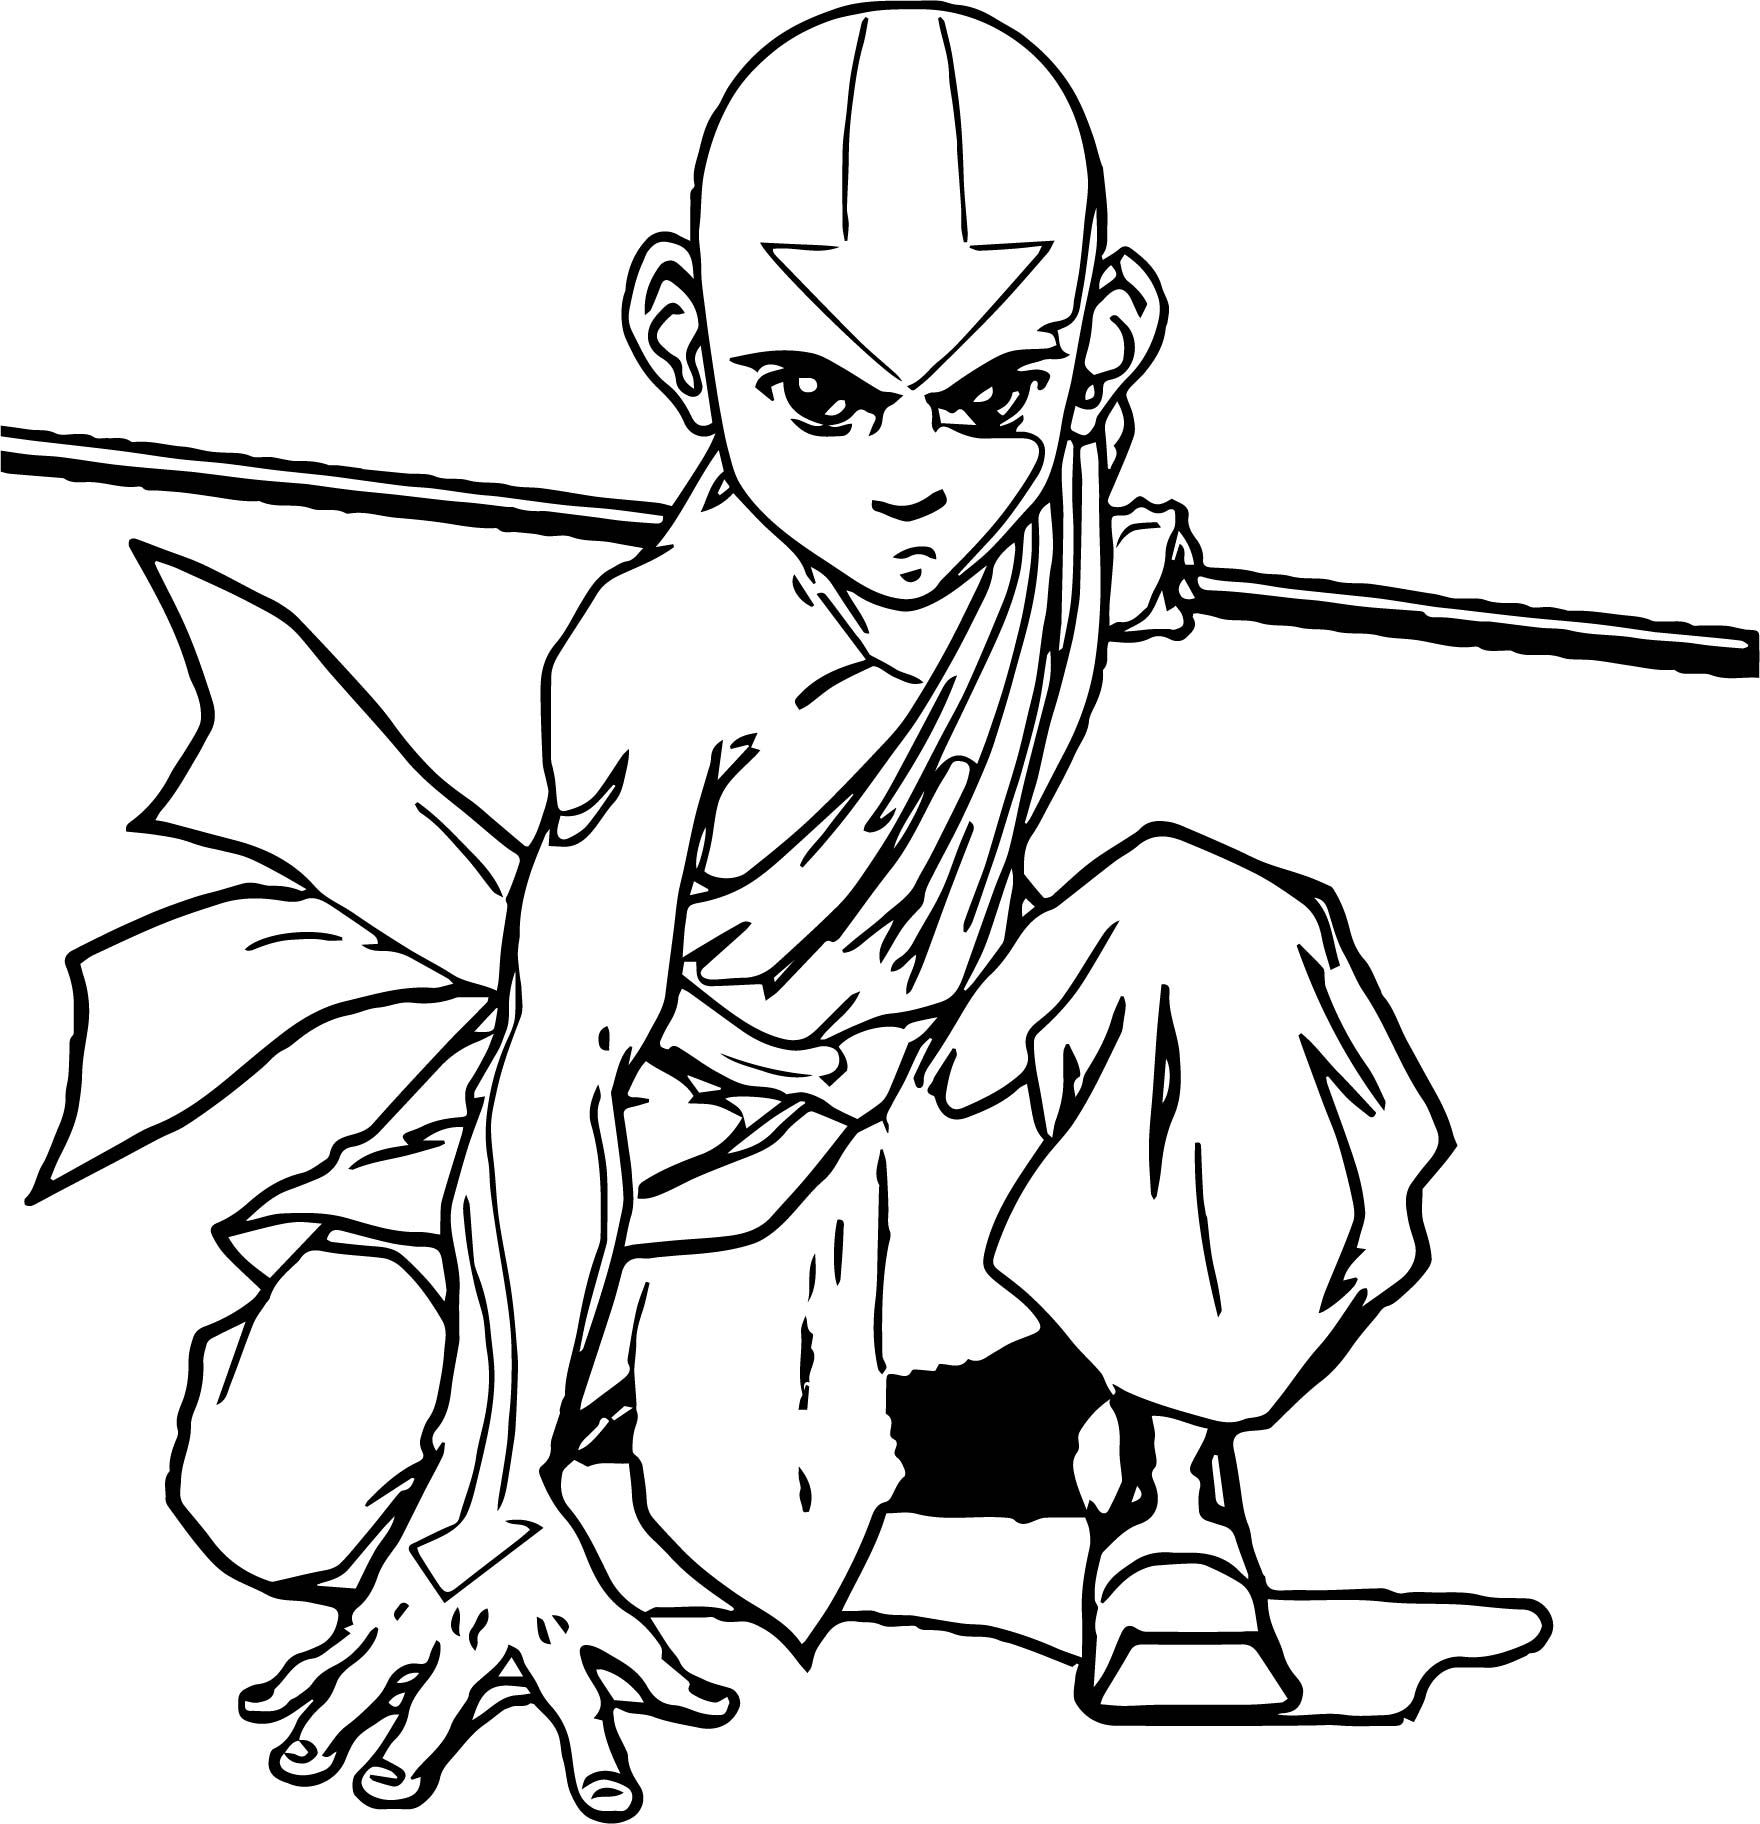 Awesome Aang Official Avatar Aang Coloring Page Avatar Aang